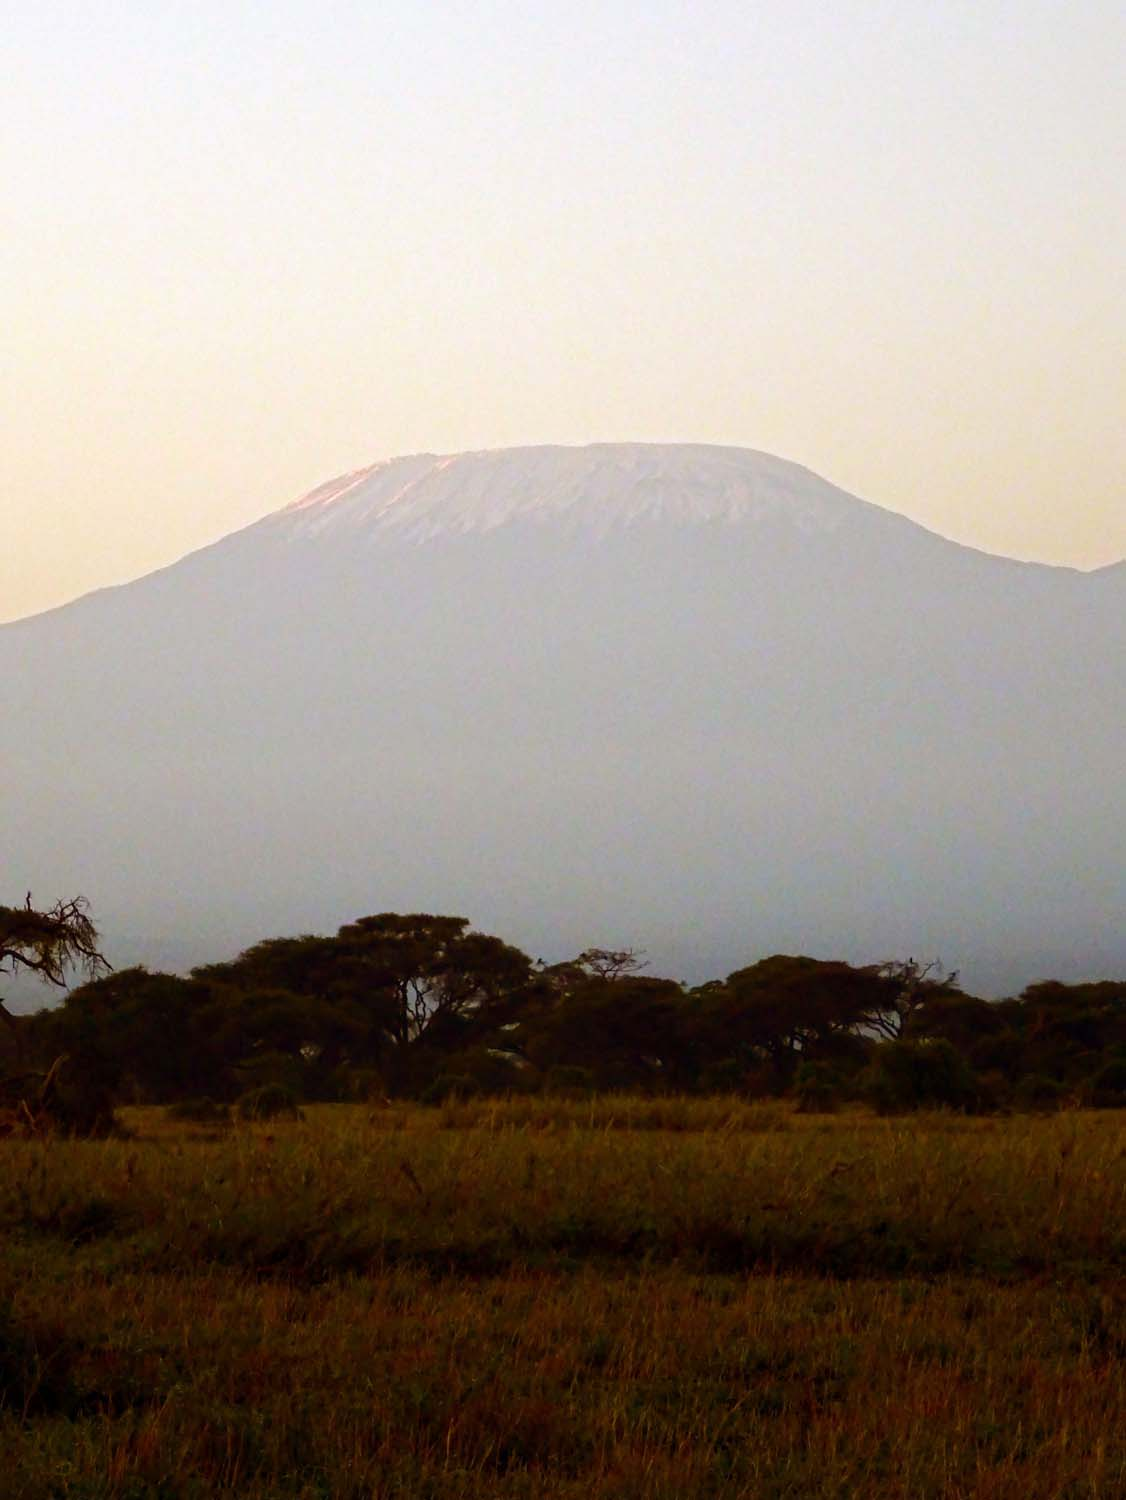 with the imposing highest mountain in Africa (Kilimanjaro) as a backdrop in Amboseli NP